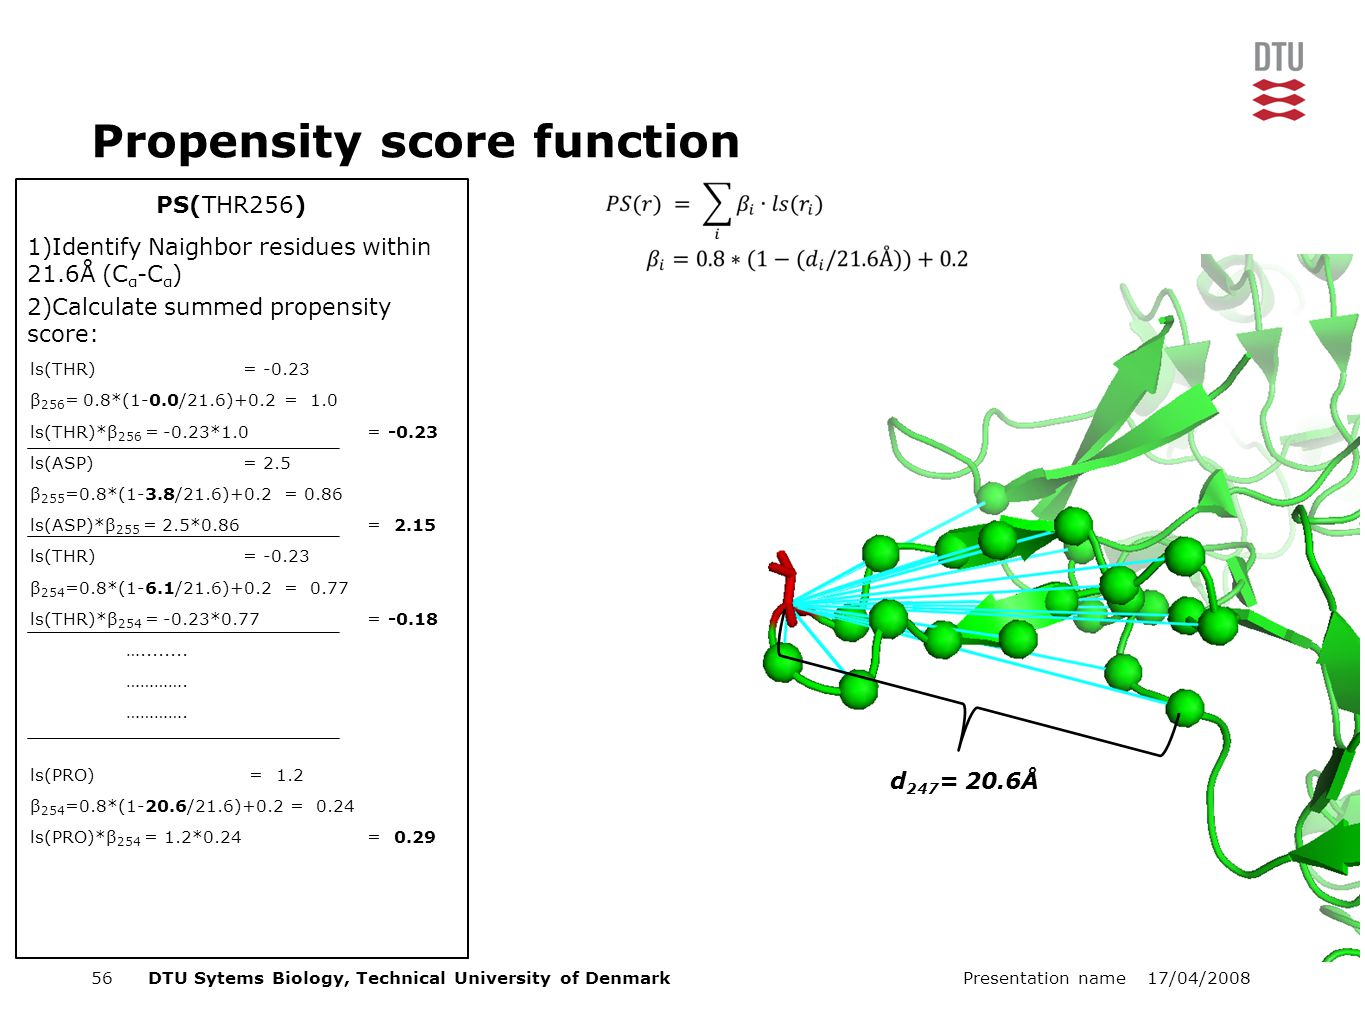 17/04/2008Presentation name56DTU Sytems Biology, Technical University of Denmark PS(THR256) Propensity score function 1)Identify Naighbor residues within 21.6Å (C α -C α ) 2)Calculate summed propensity score: ls(THR) = -0.23 β 256 = 0.8*(1-0.0/21.6)+0.2 = 1.0 ls(THR)*β 256 = -0.23*1.0 = -0.23 ls(ASP) = 2.5 β 255 =0.8*(1-3.8/21.6)+0.2 = 0.86 ls(ASP)*β 255 = 2.5*0.86 = 2.15 ls(THR) = -0.23 β 254 =0.8*(1-6.1/21.6)+0.2 = 0.77 ls(THR)*β 254 = -0.23*0.77 = -0.18 …........